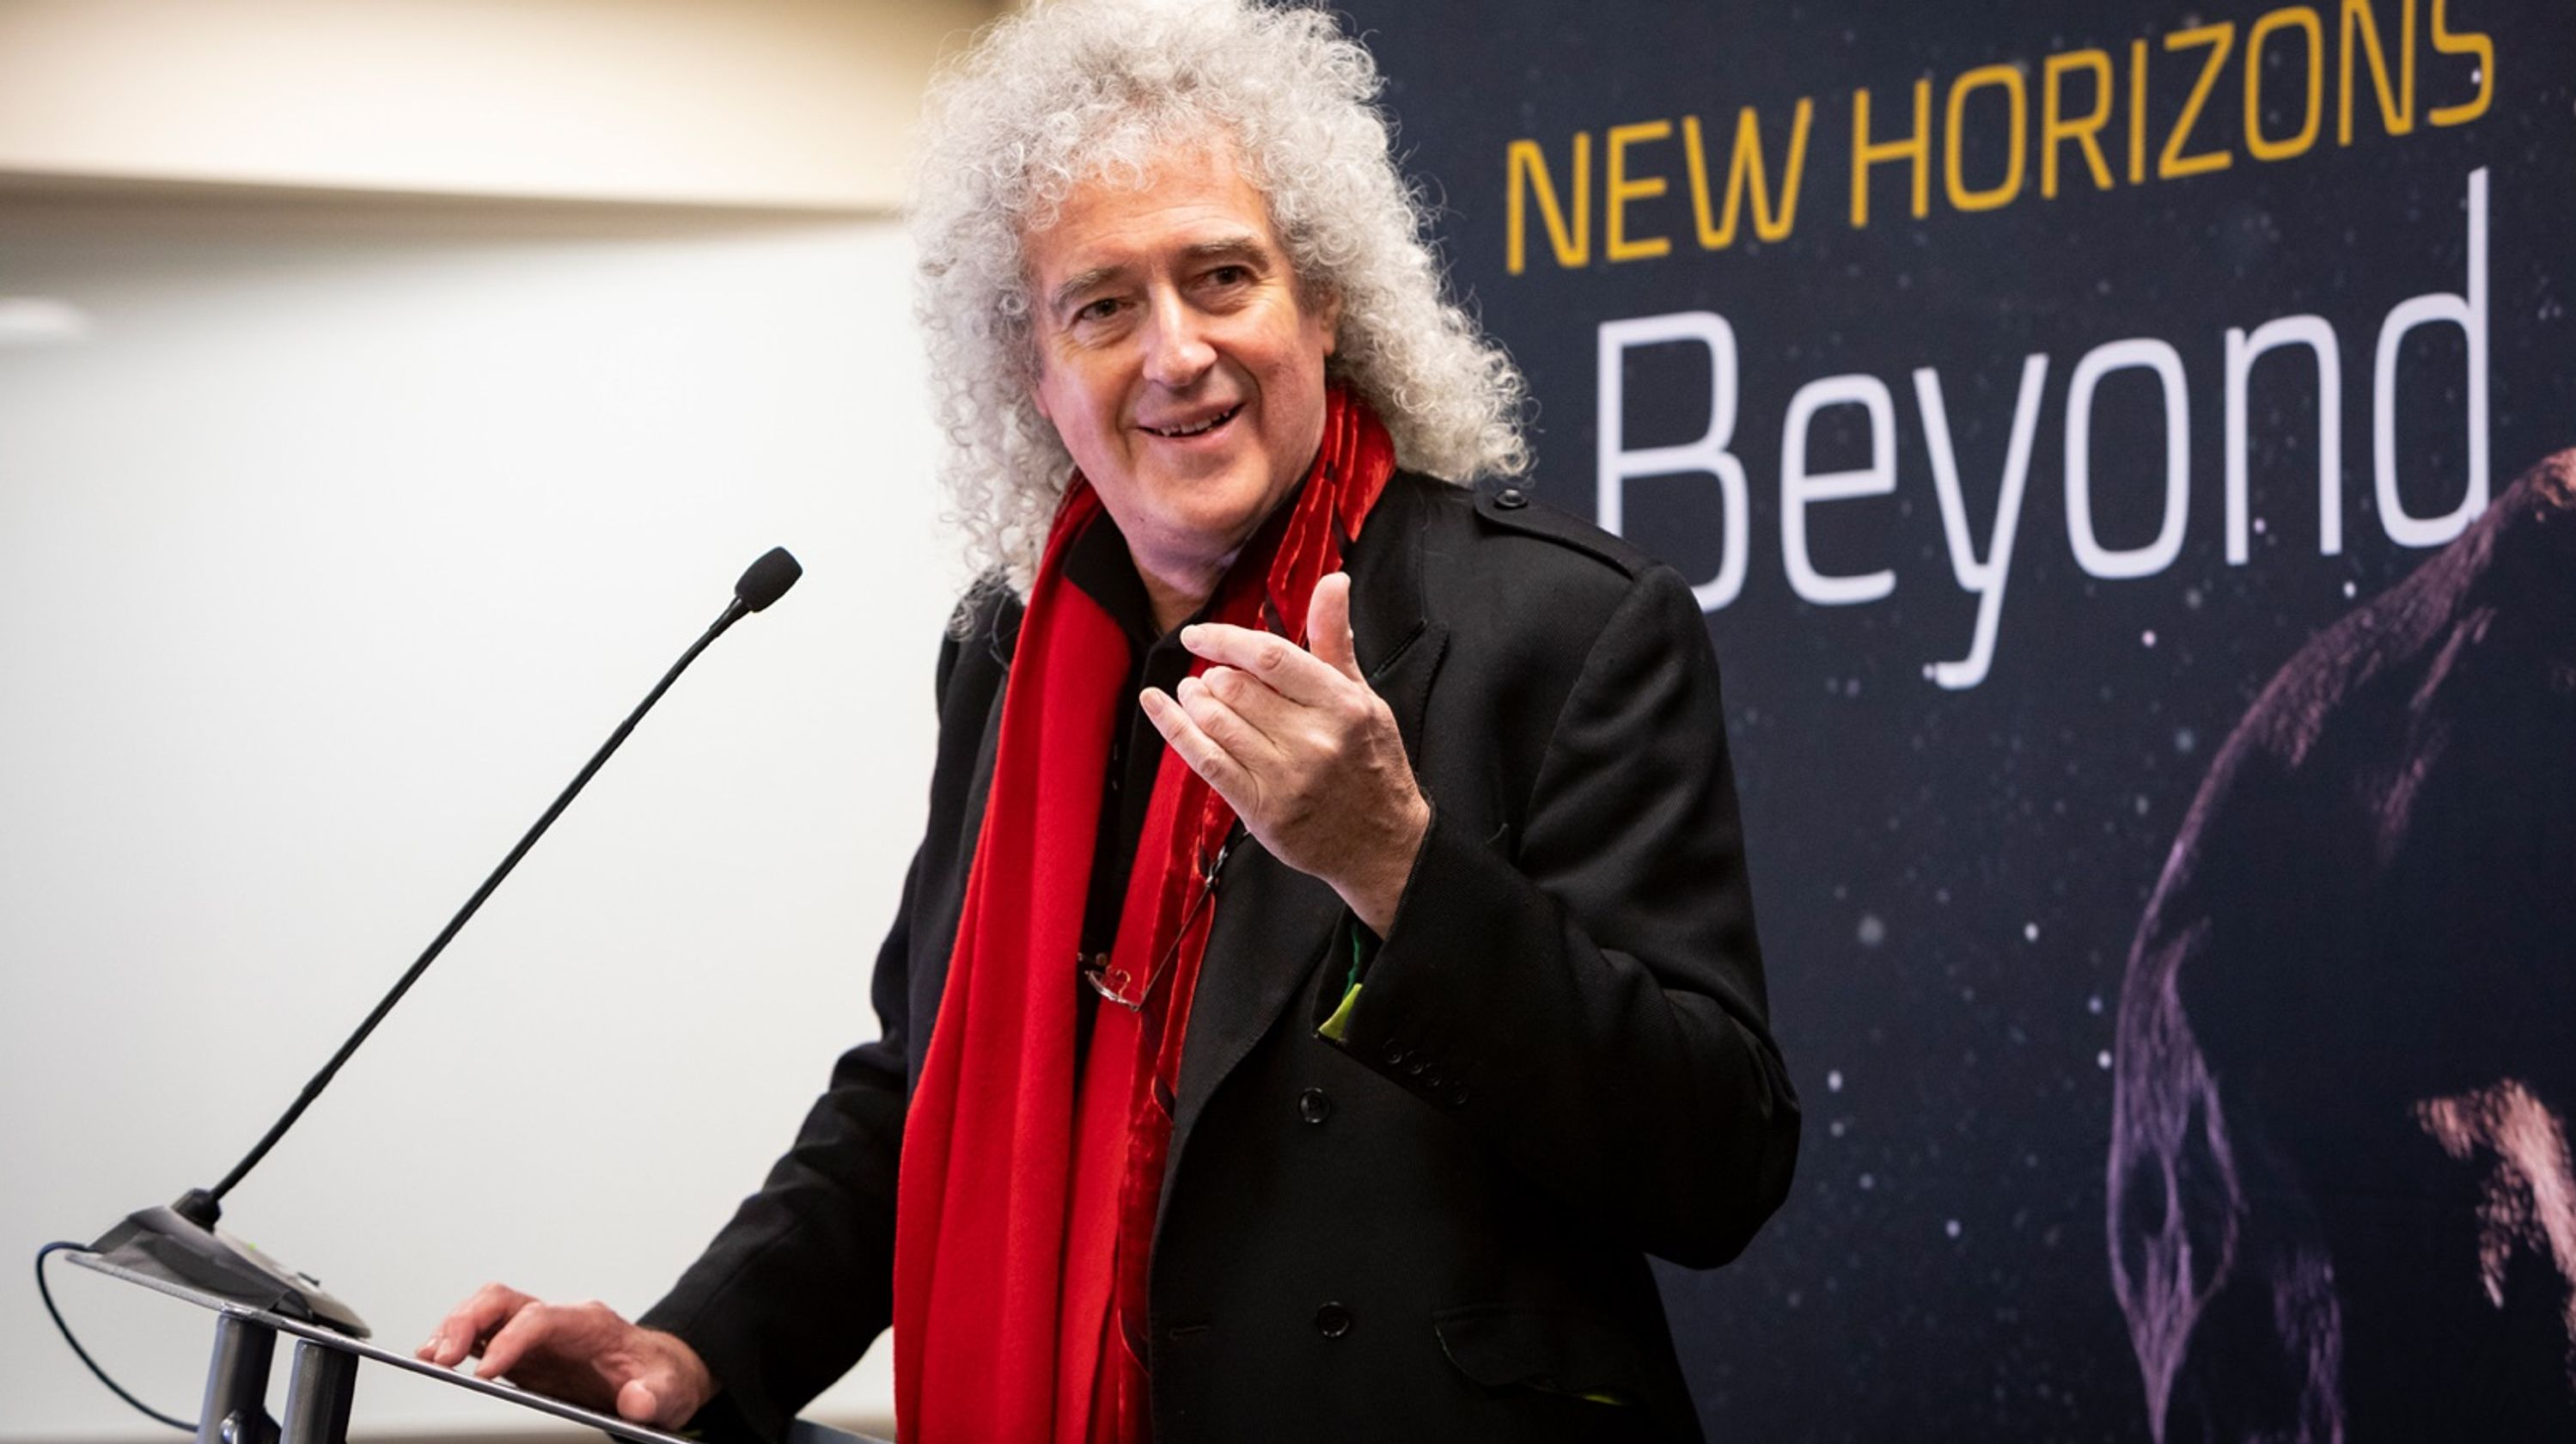 Queen guitarist Brian May releases new song dedicated to NASA's New Horizons mission